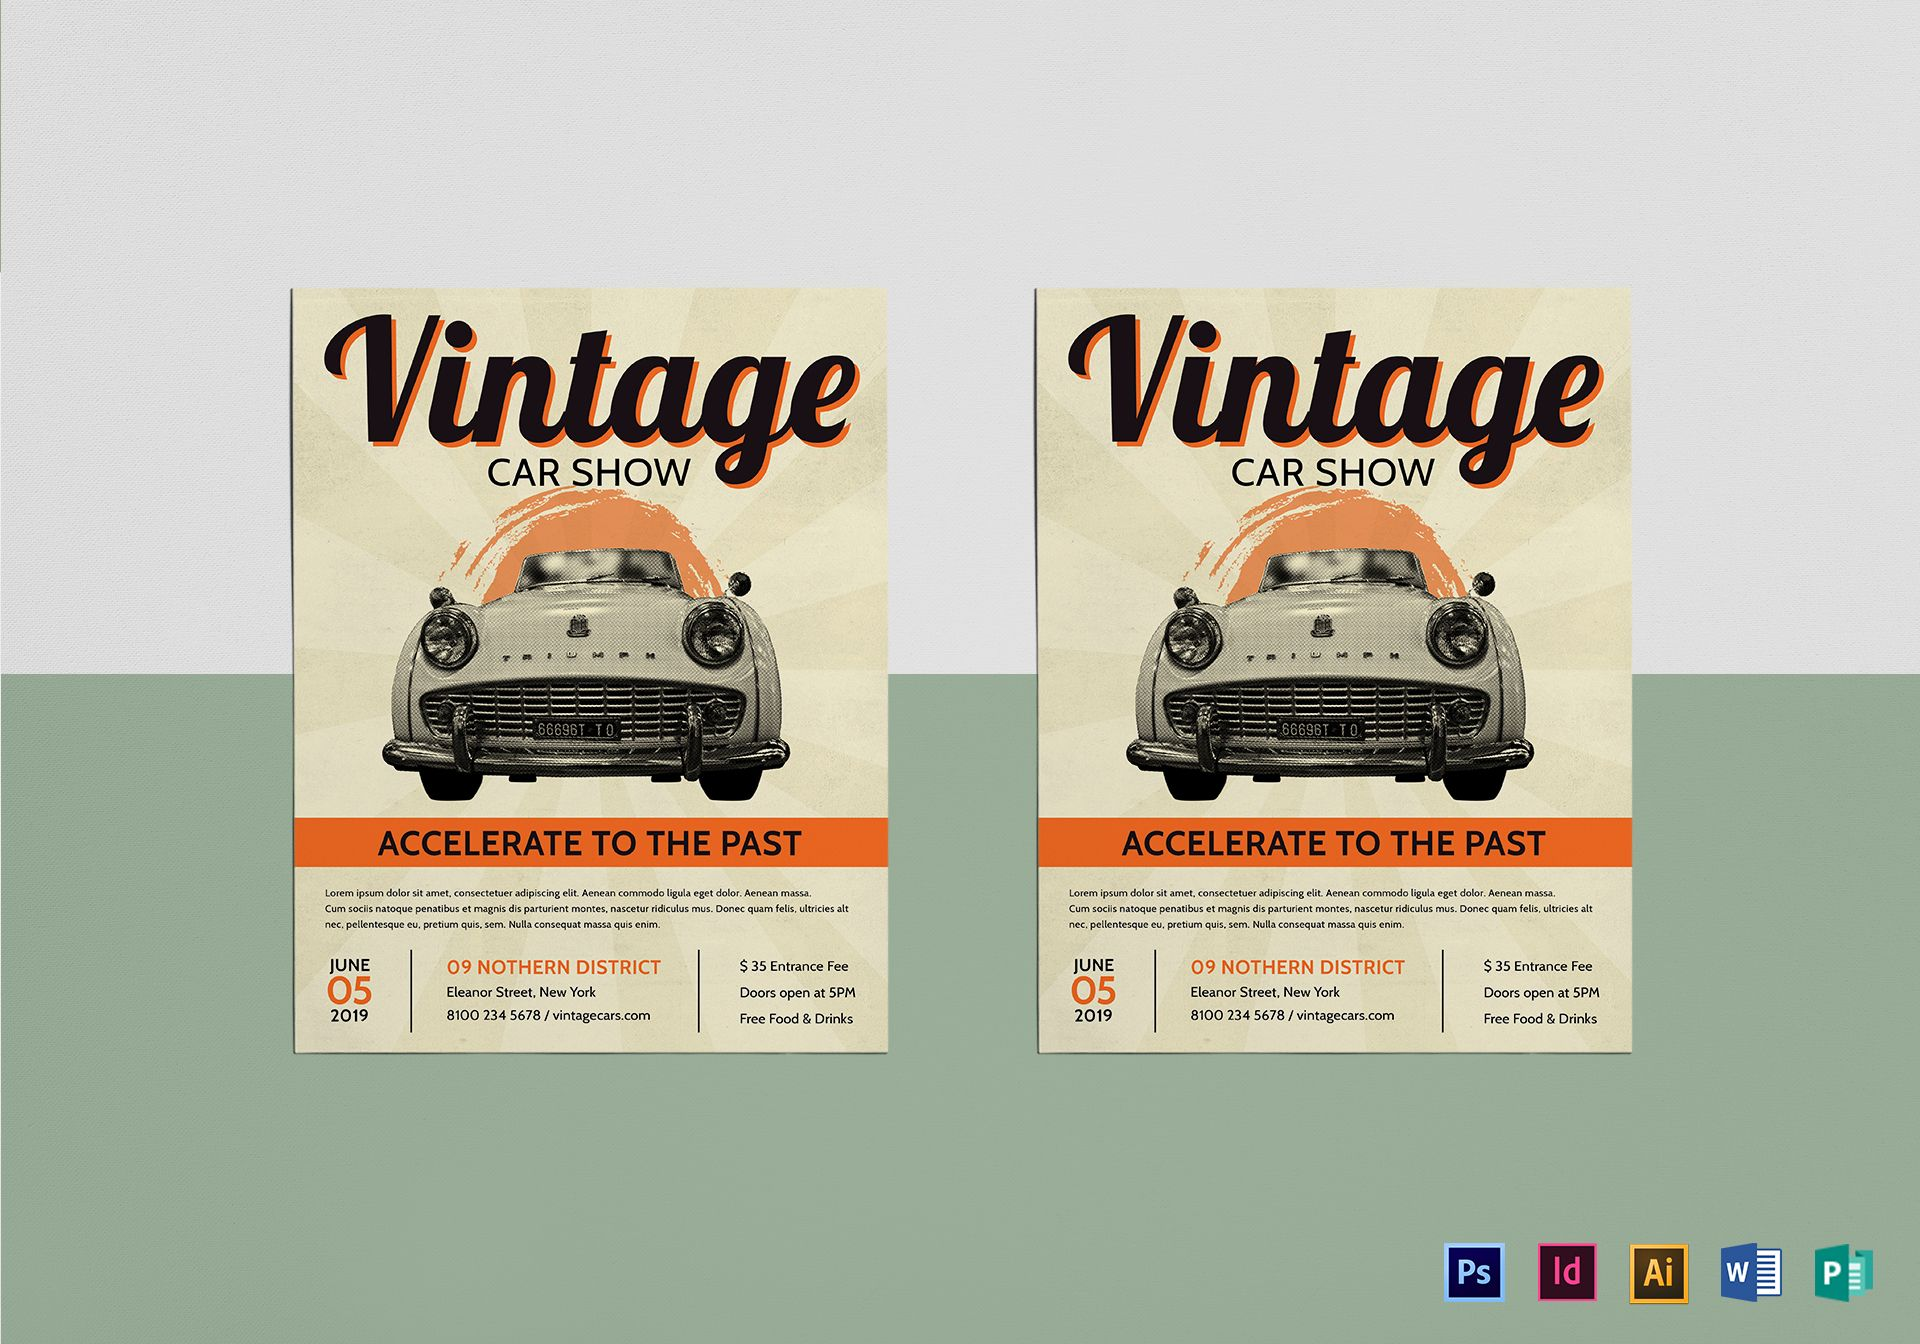 Vintage Car Show Flyer Design Template In PSD Word Publisher - Car show flyer template